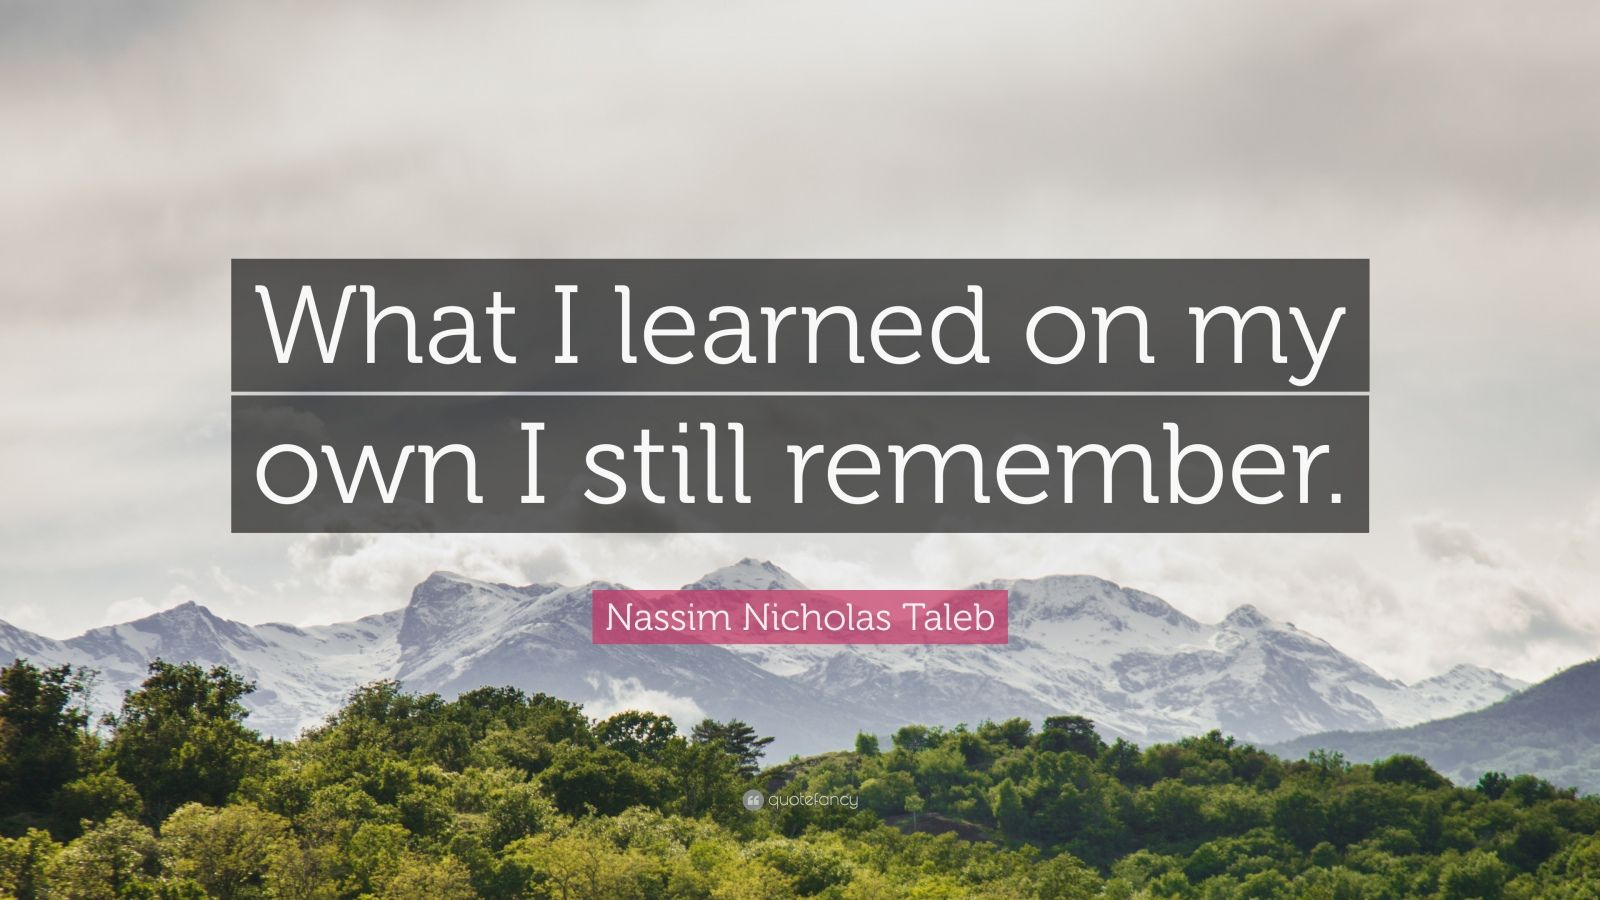 """Nassim Nicholas Taleb Quote: """"What I learned on my own I still remember."""""""